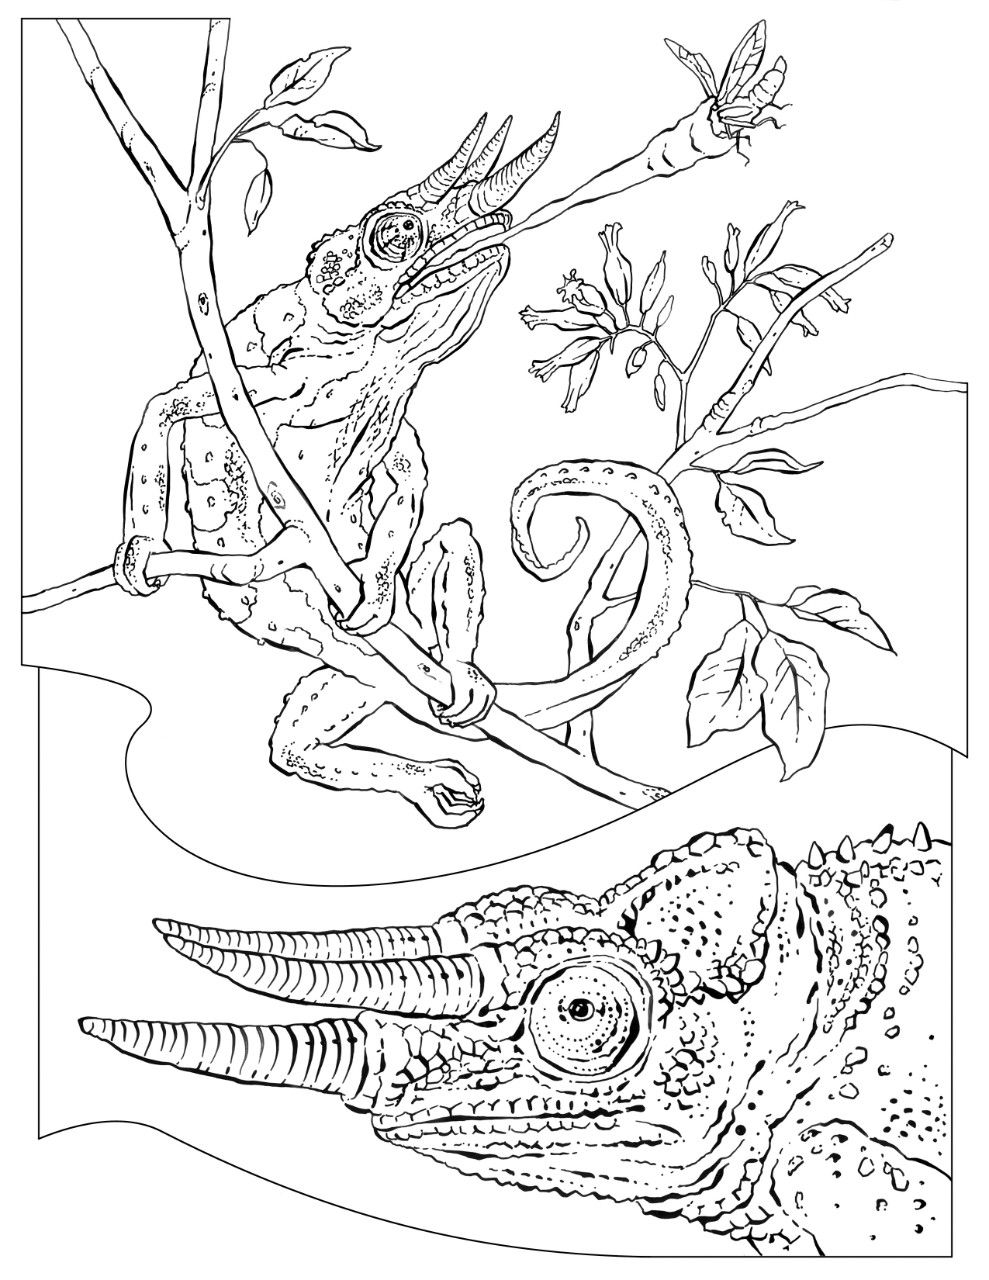 Coloring Book: Animals (J to Z) | Science | Pinterest | Coloring ...